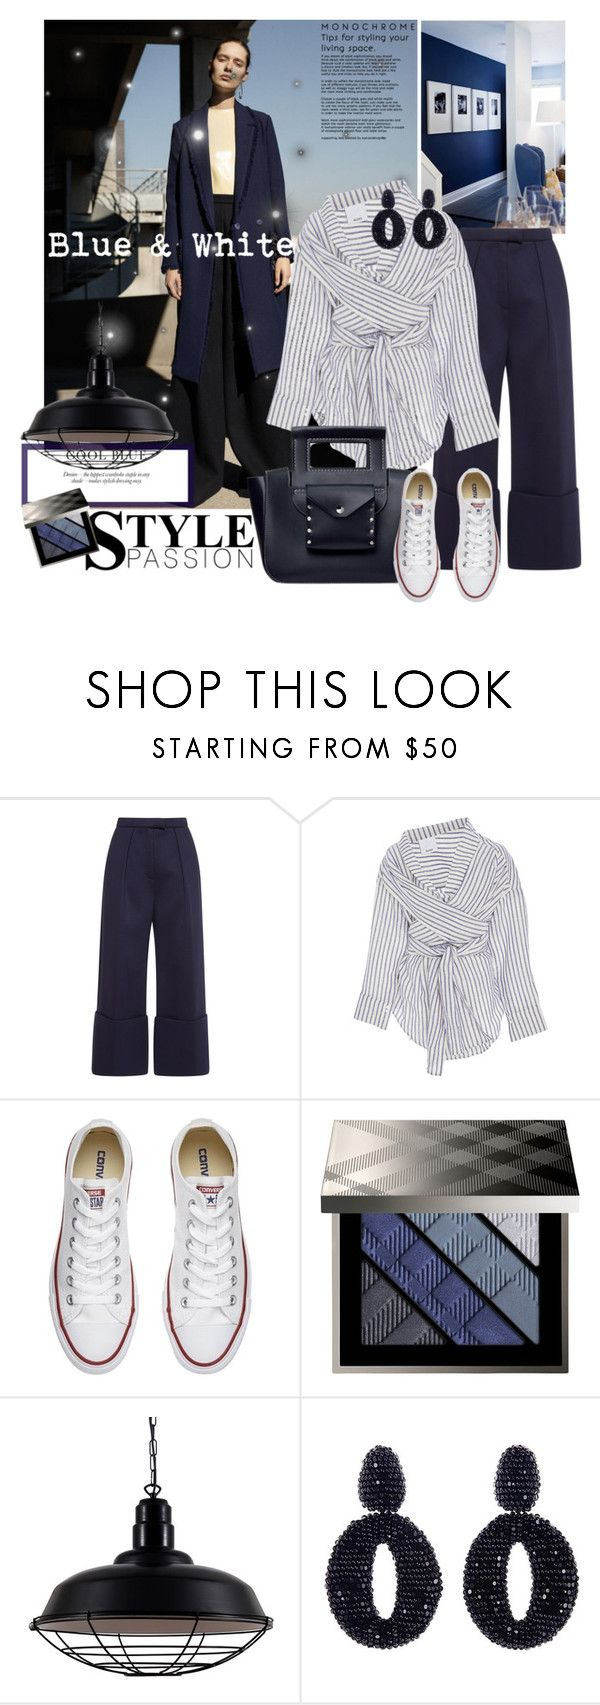 """Blue & White"" by mariapia65 ❤ liked on Polyvore featuring Acler, Converse, Burberry, Oscar de la Renta, white and Blue"